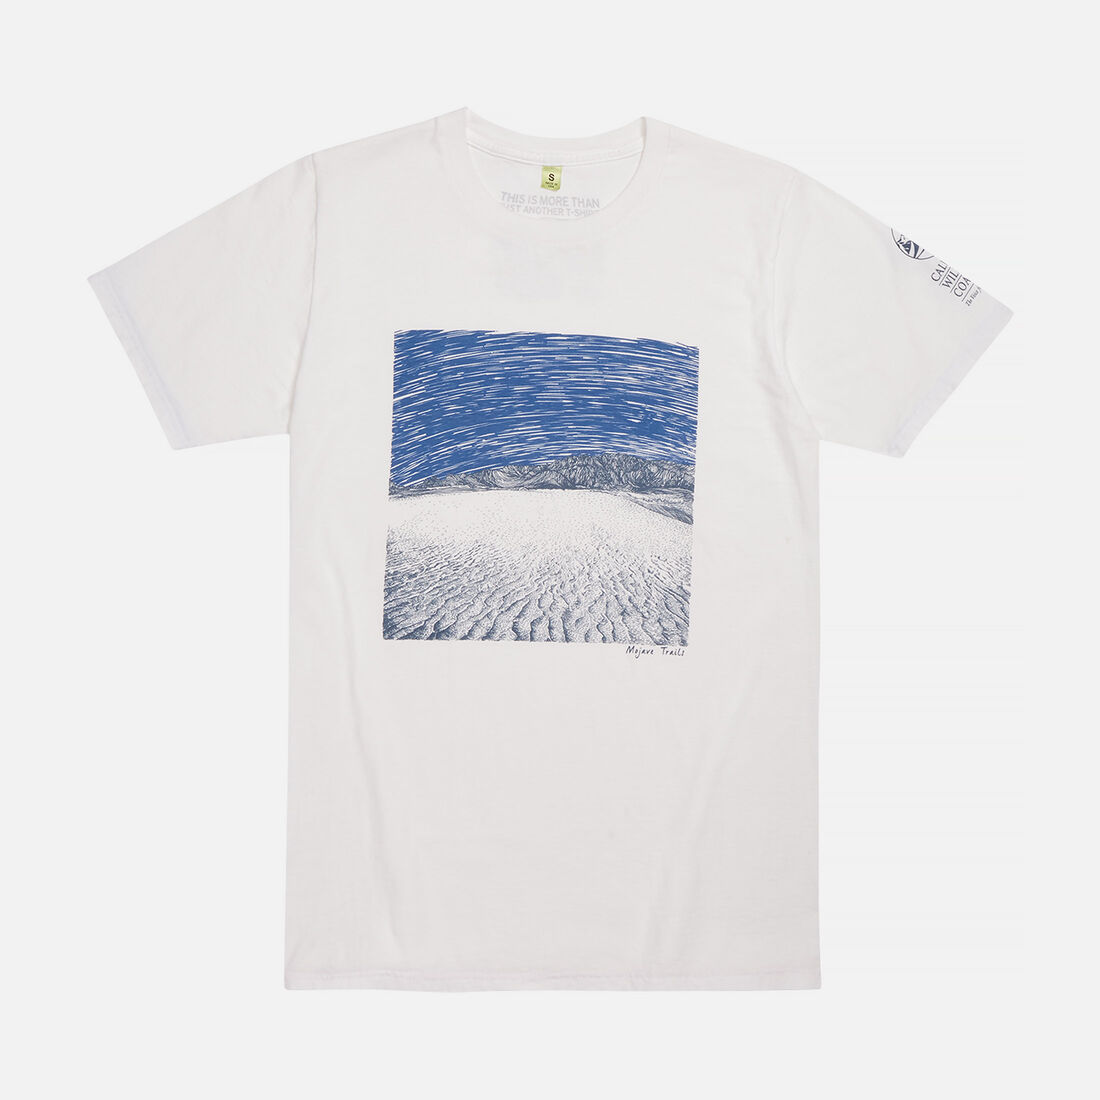 Men's Mojave Trails, CA Tee in White - large view.